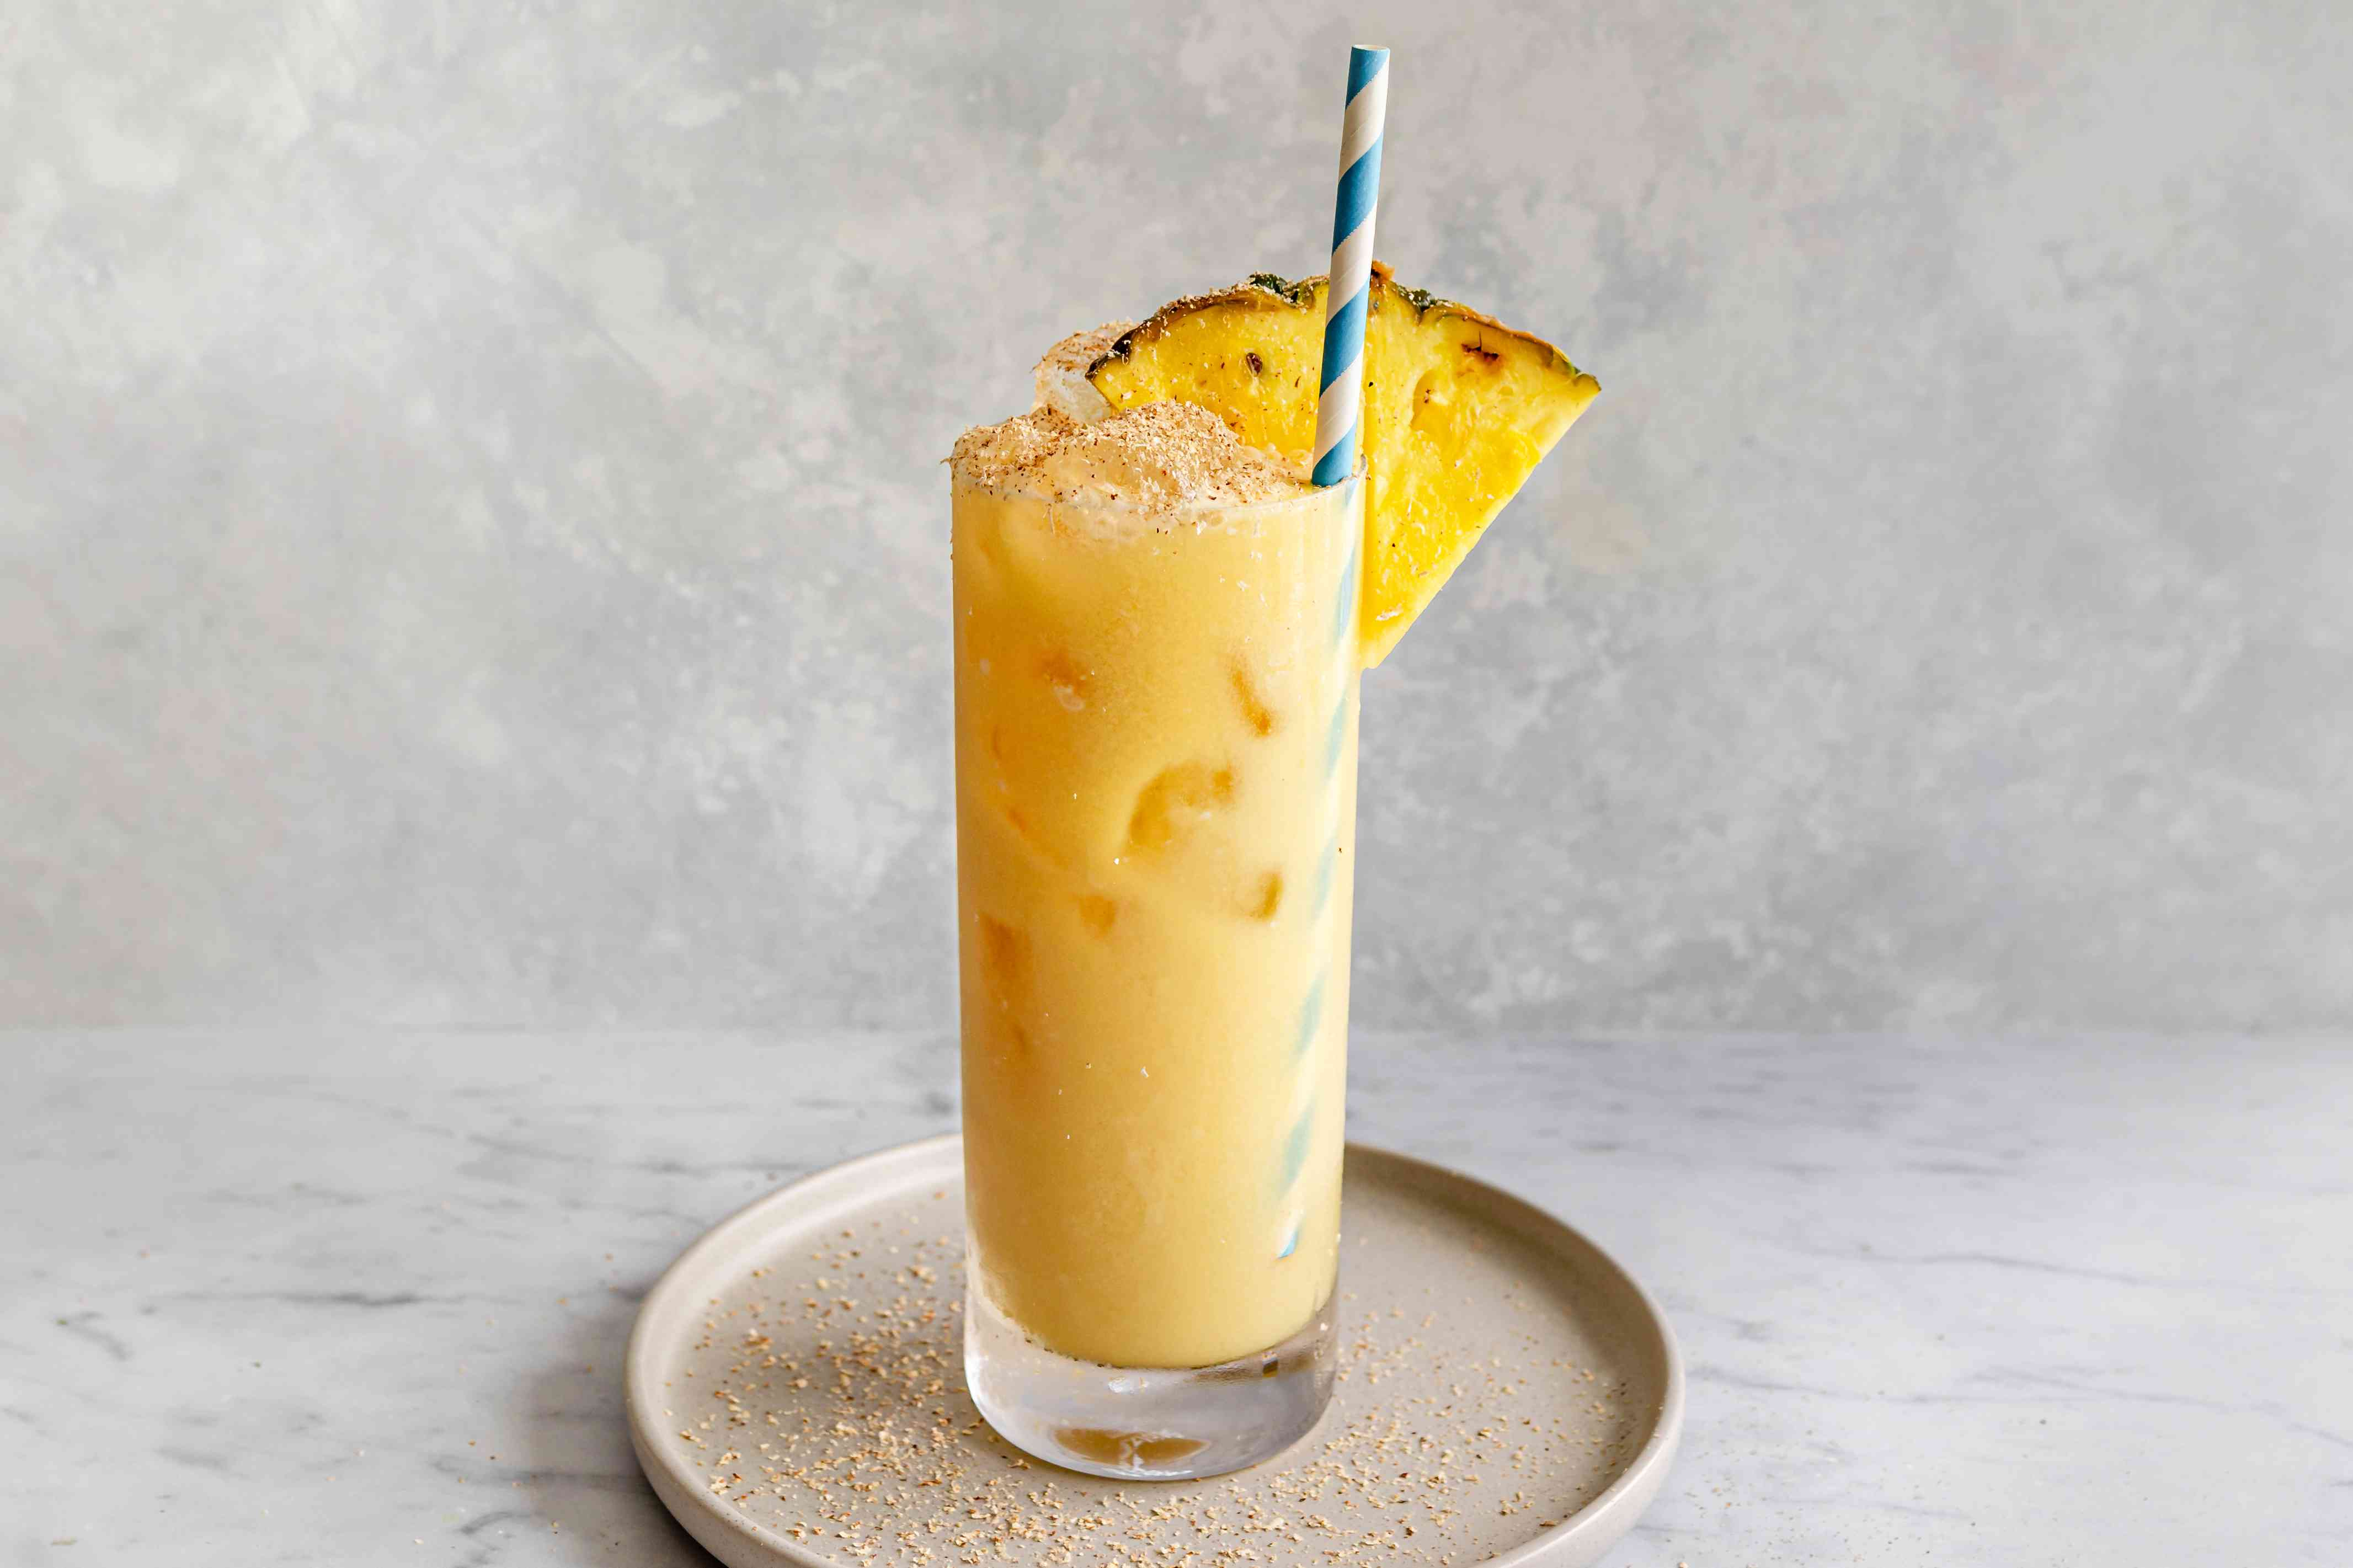 Painkiller cocktail with a straw and a wedge of fresh pineapple